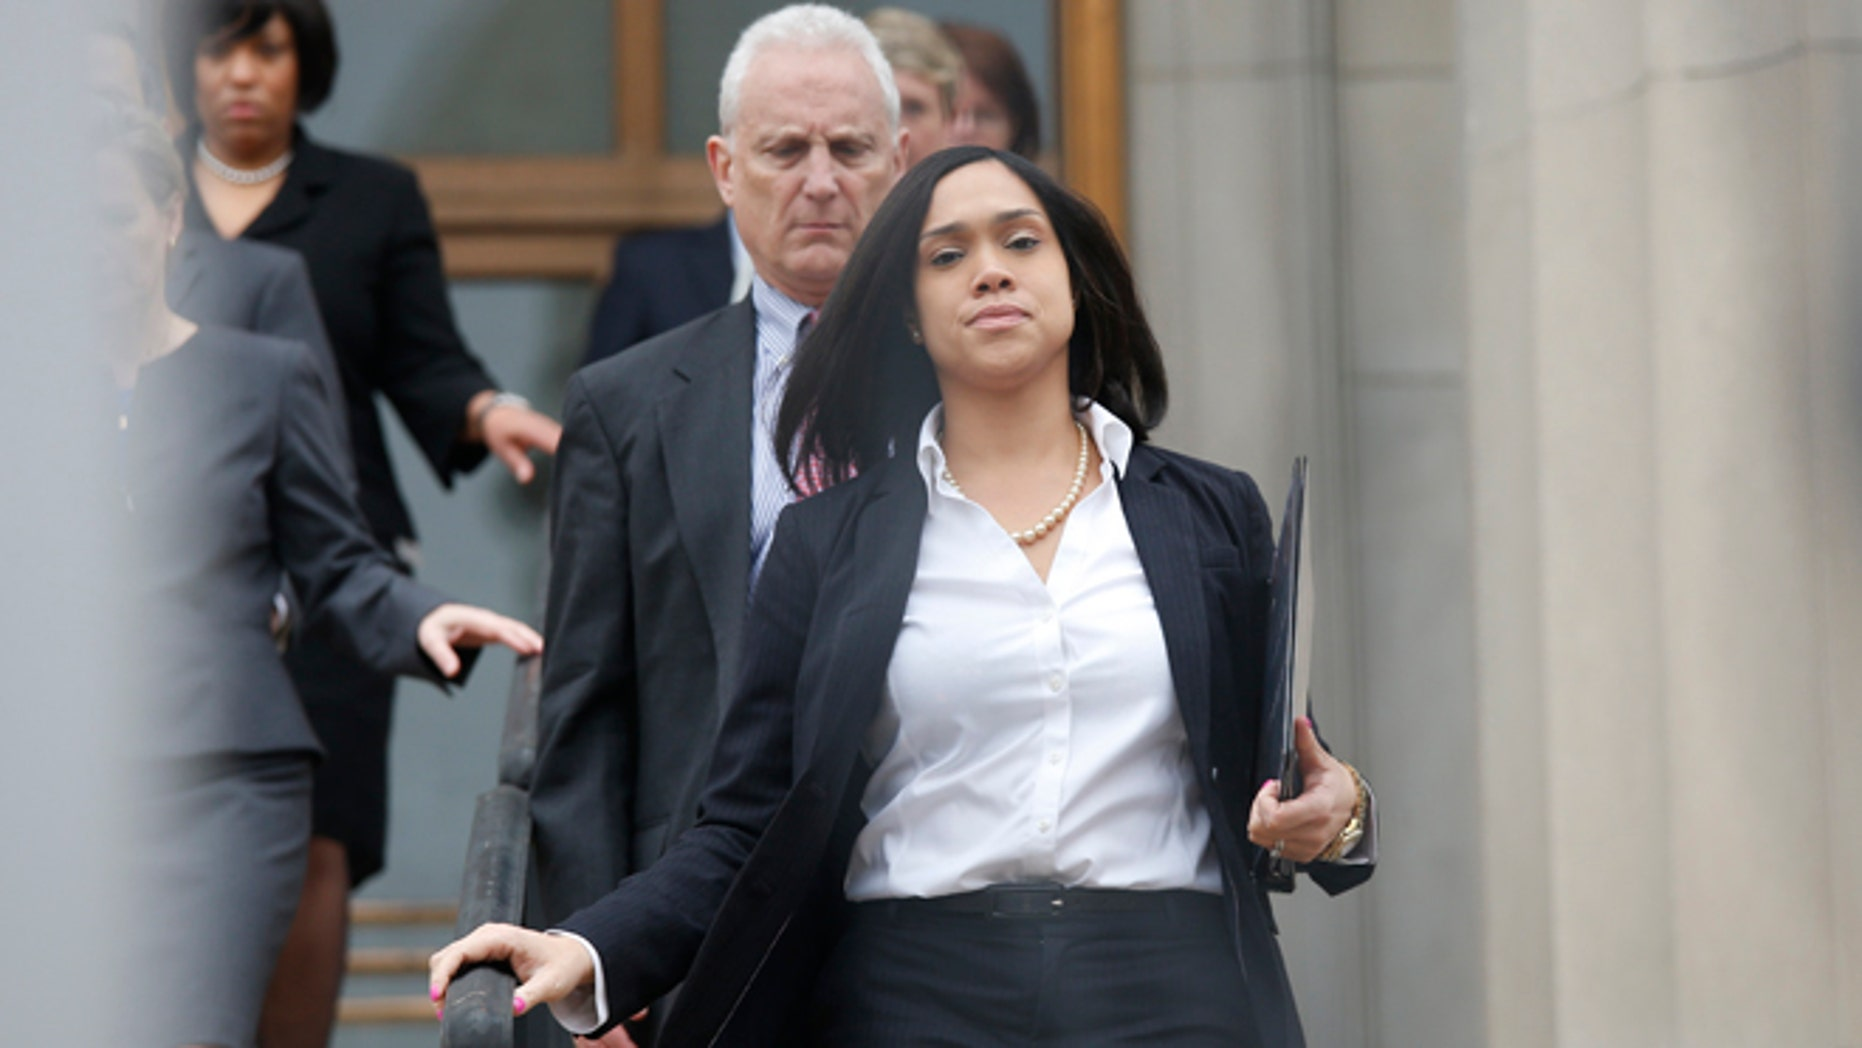 May 1, 2015: Baltimore state attorney Marilyn Mosby walks down the stairs followed by her legal team to speak on Freddie Gray case.